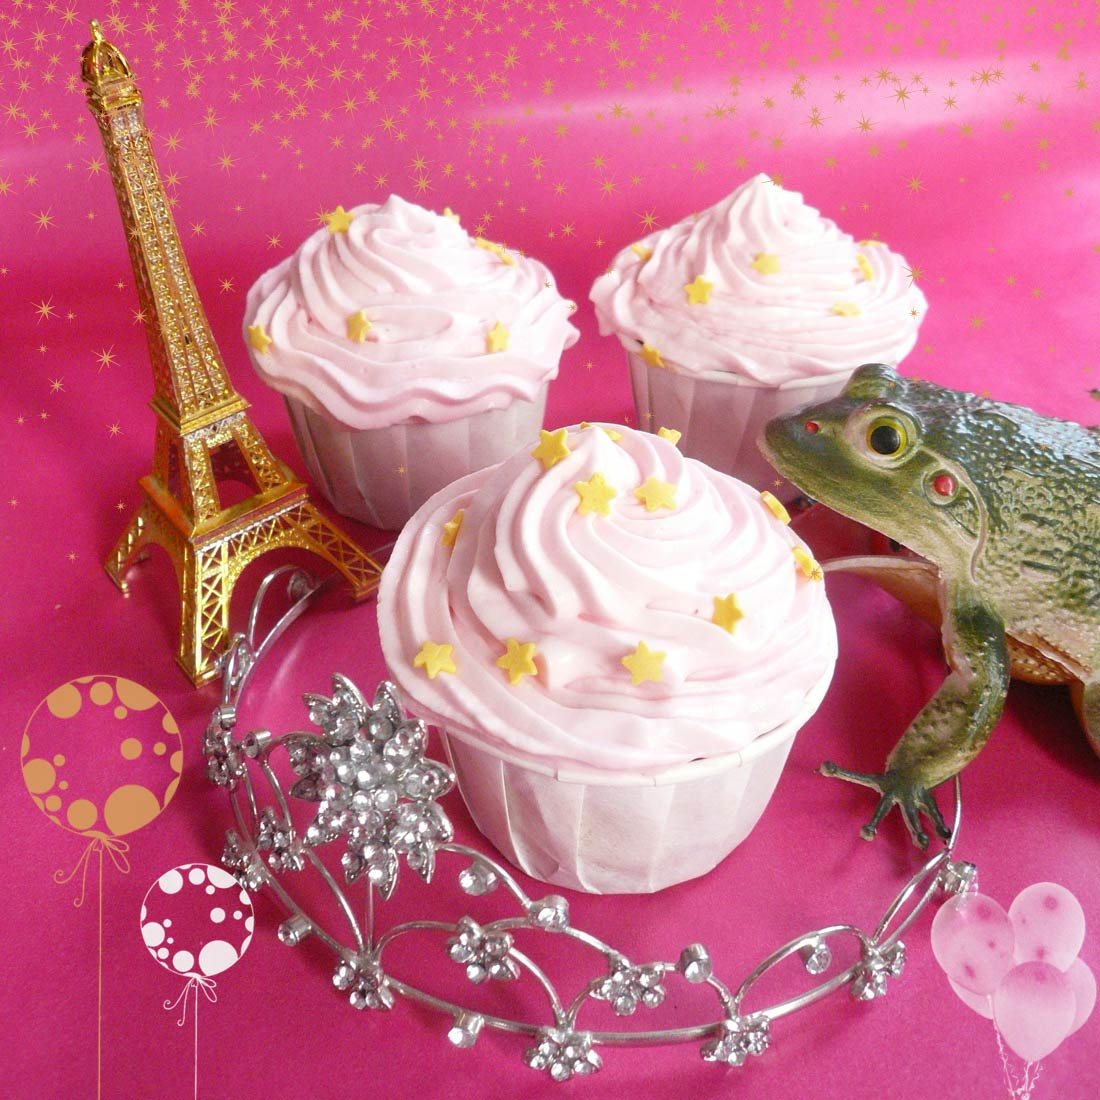 Fairy cranberry cupcakes